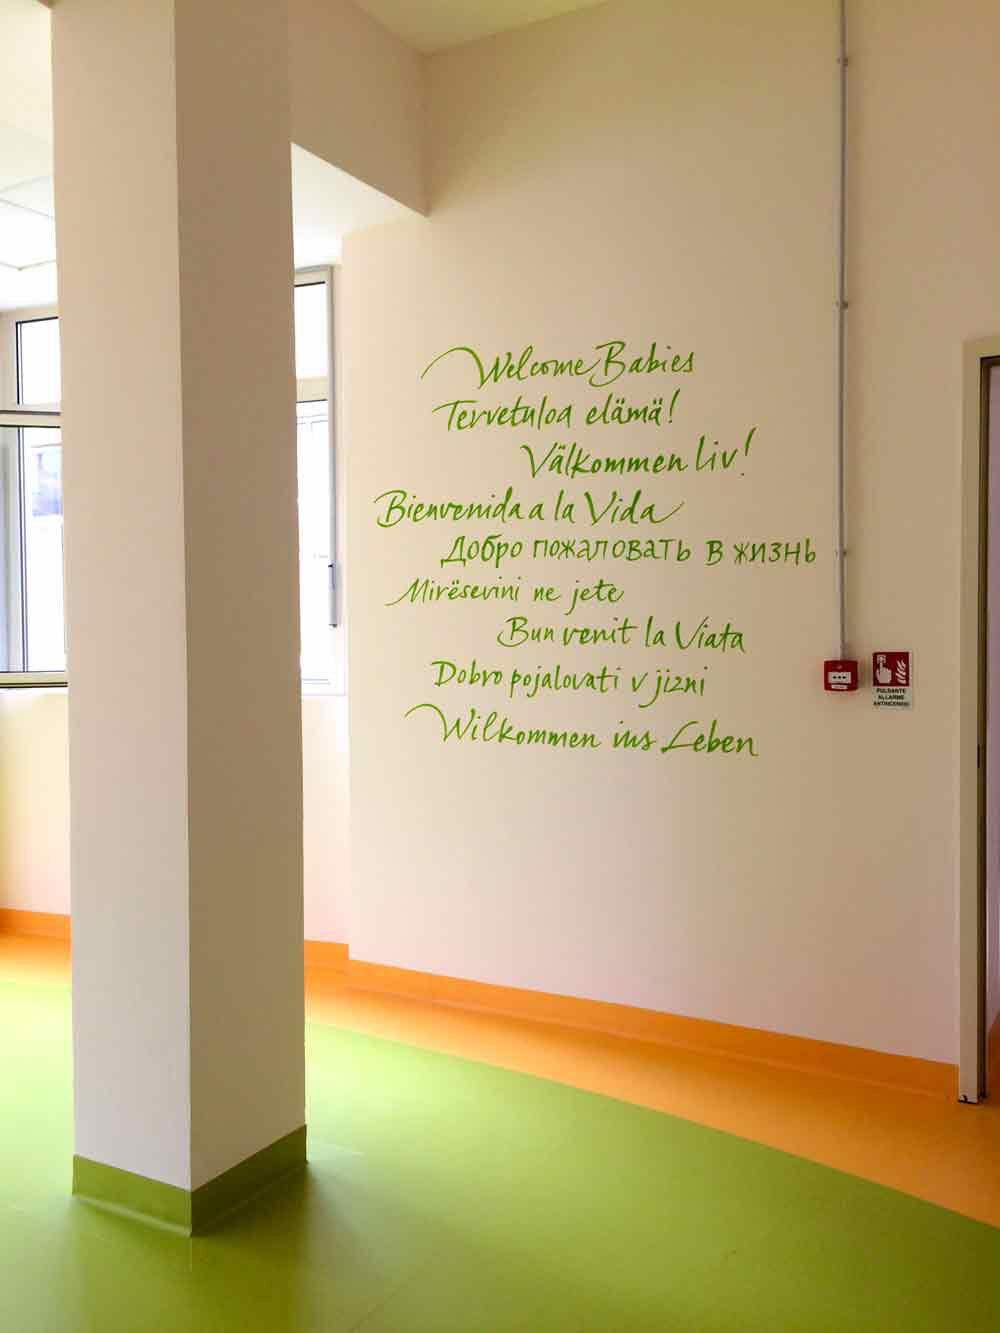 Art is relational in this project: Welcome Babies at Sant'Anna Hospital in Torino, Piemonte, Italia